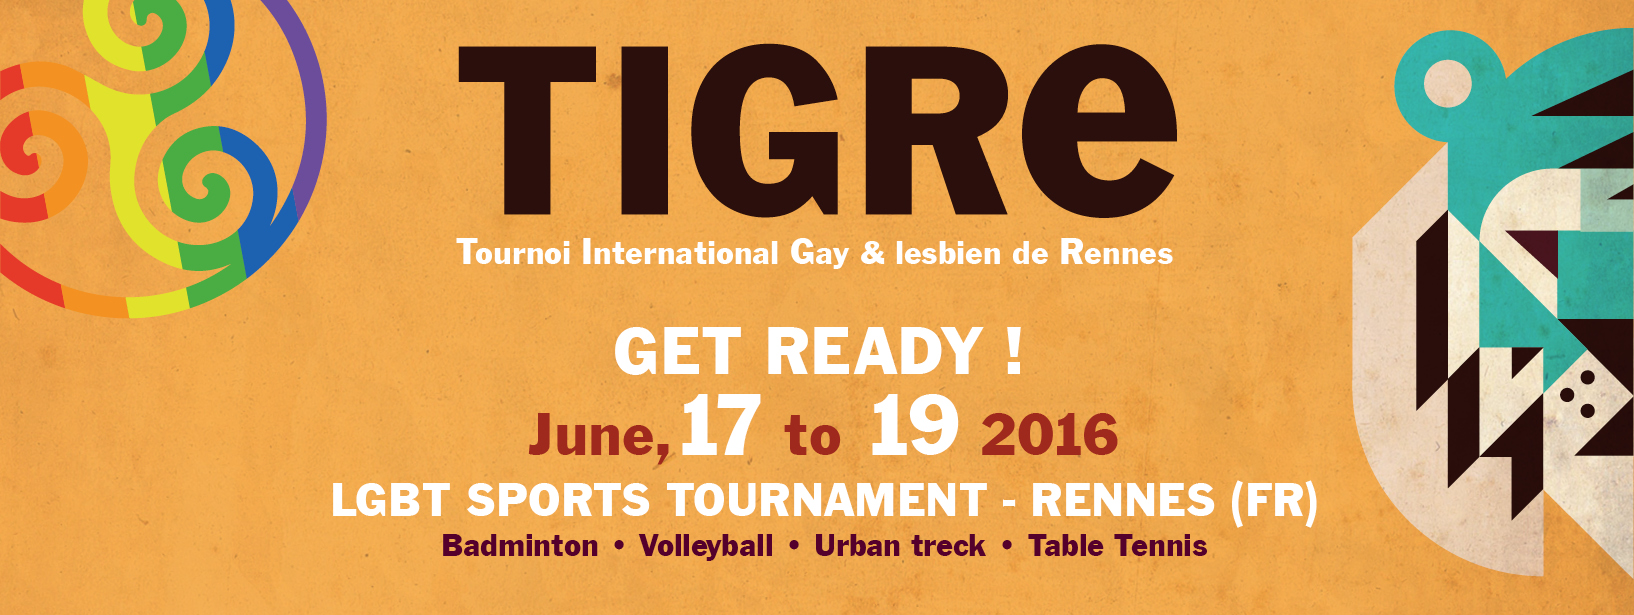 TIGRE 2016 – INTERNATIONAL LBGT SPORT TOURNAMENT IN RENNES @ GLS RENNES